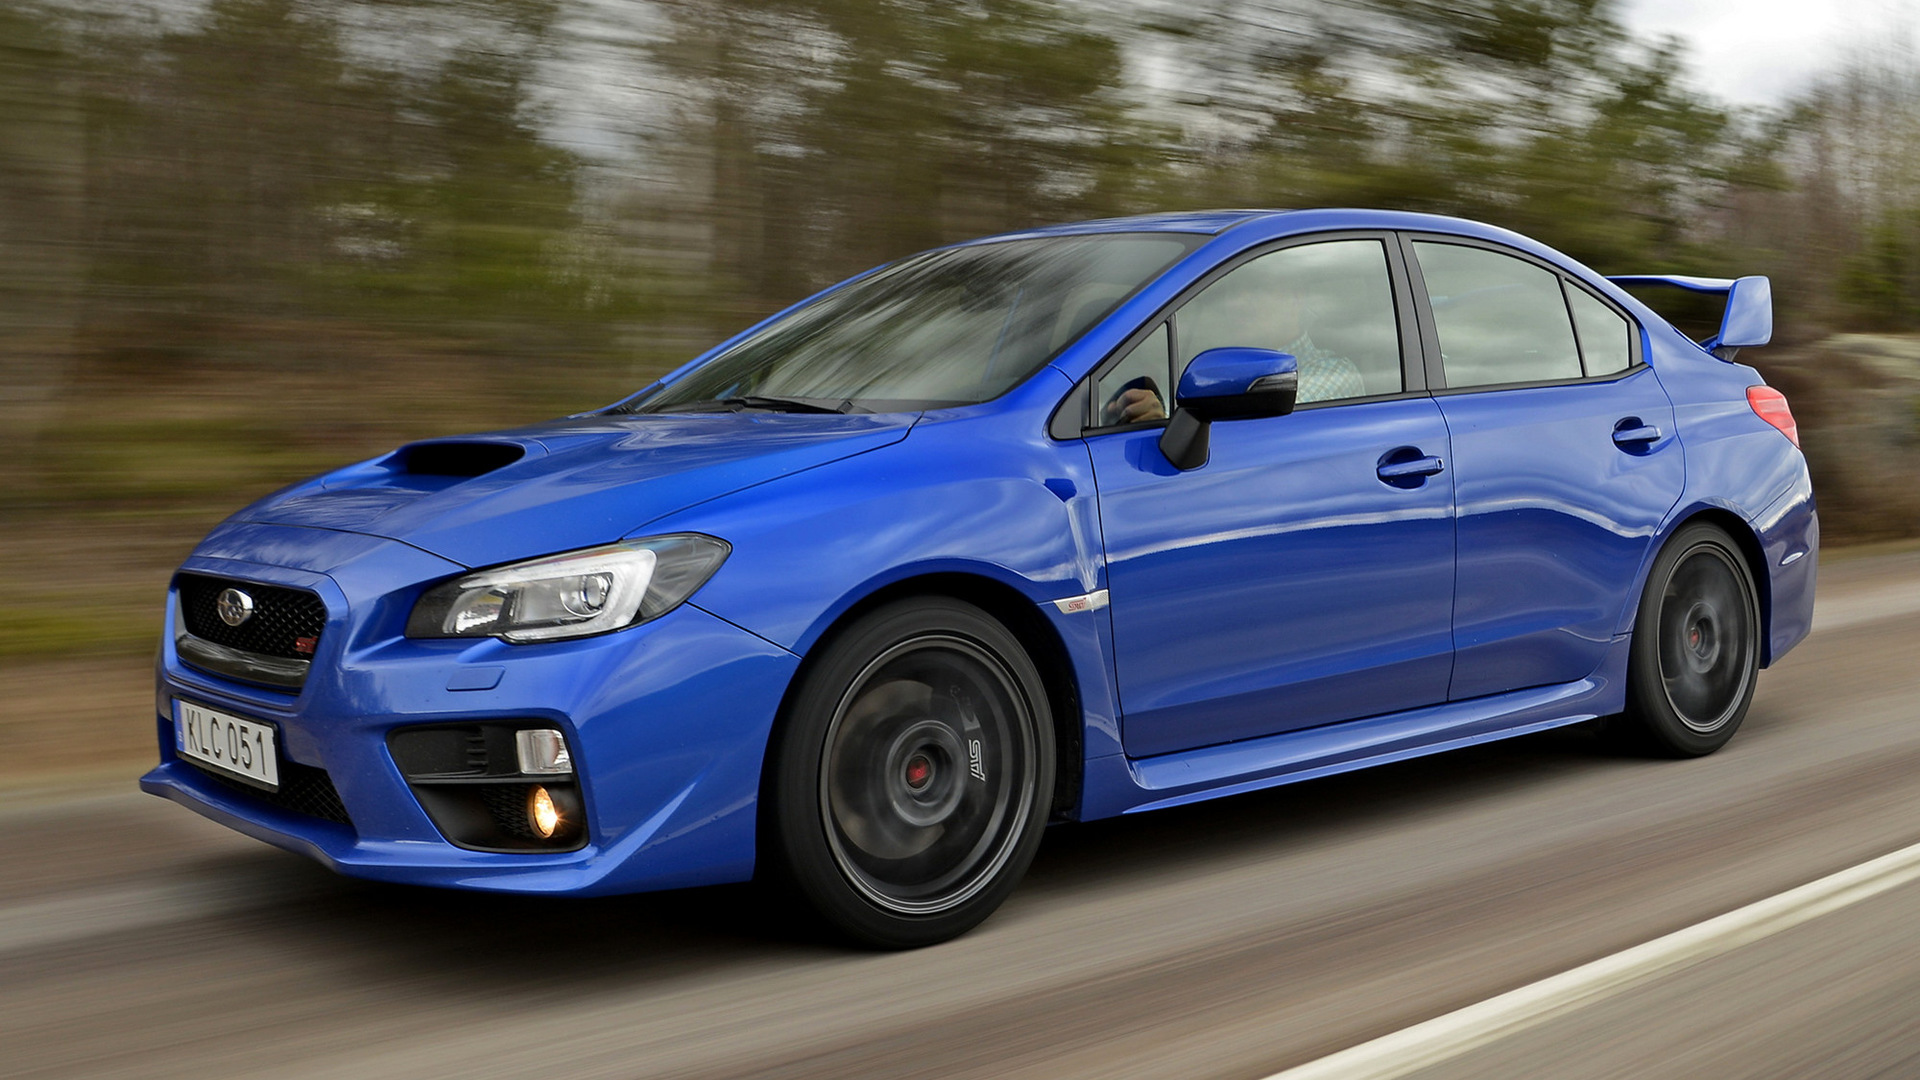 Subaru WRX STI (2014) Wallpapers and HD Images - Car Pixel